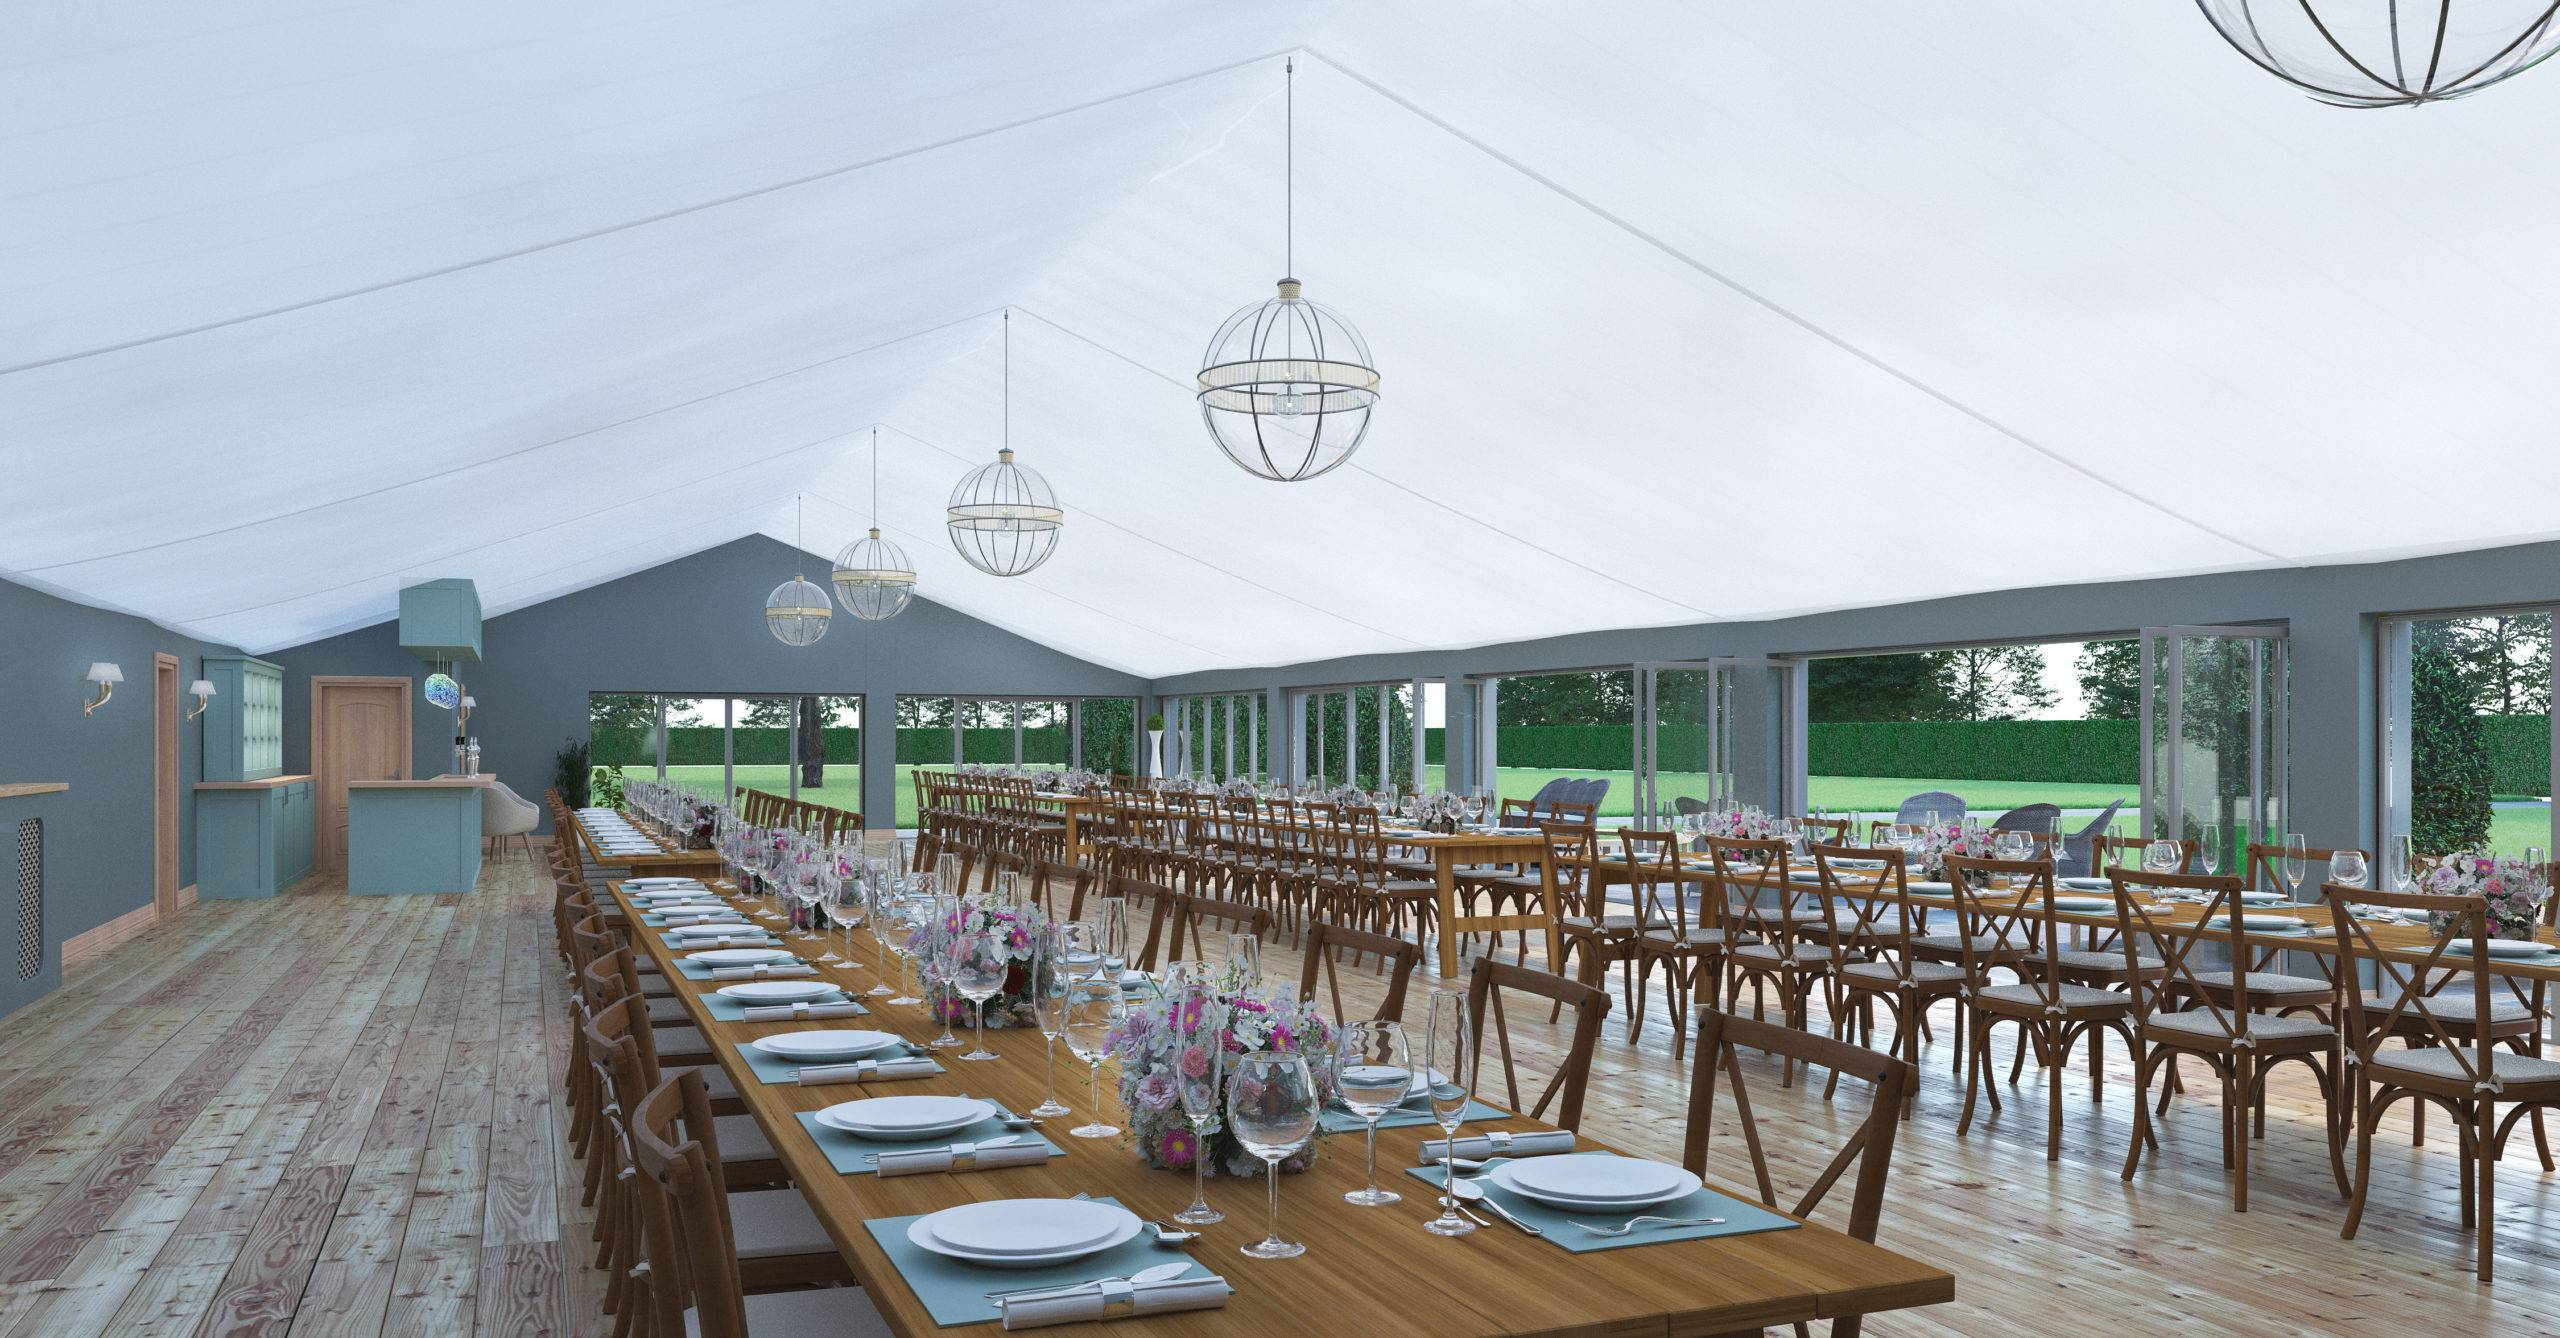 Kinmount Pavilion tables ready for guests